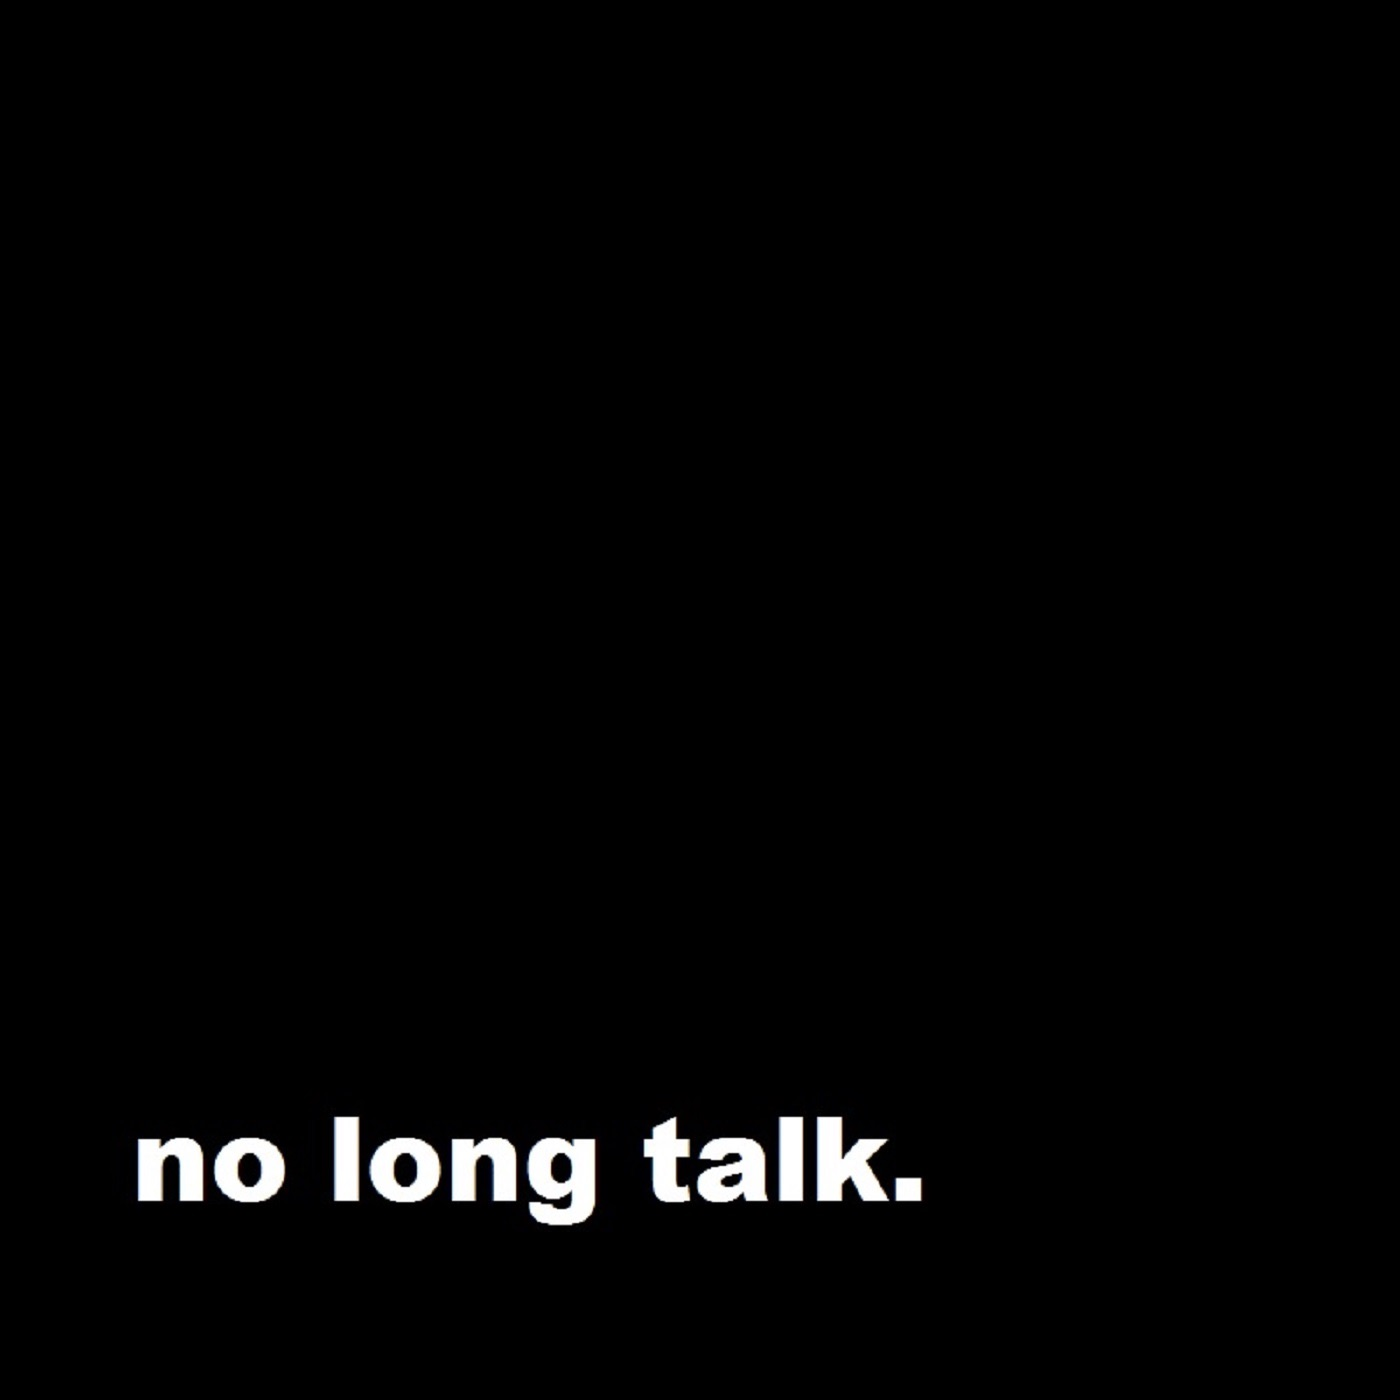 no long talk.